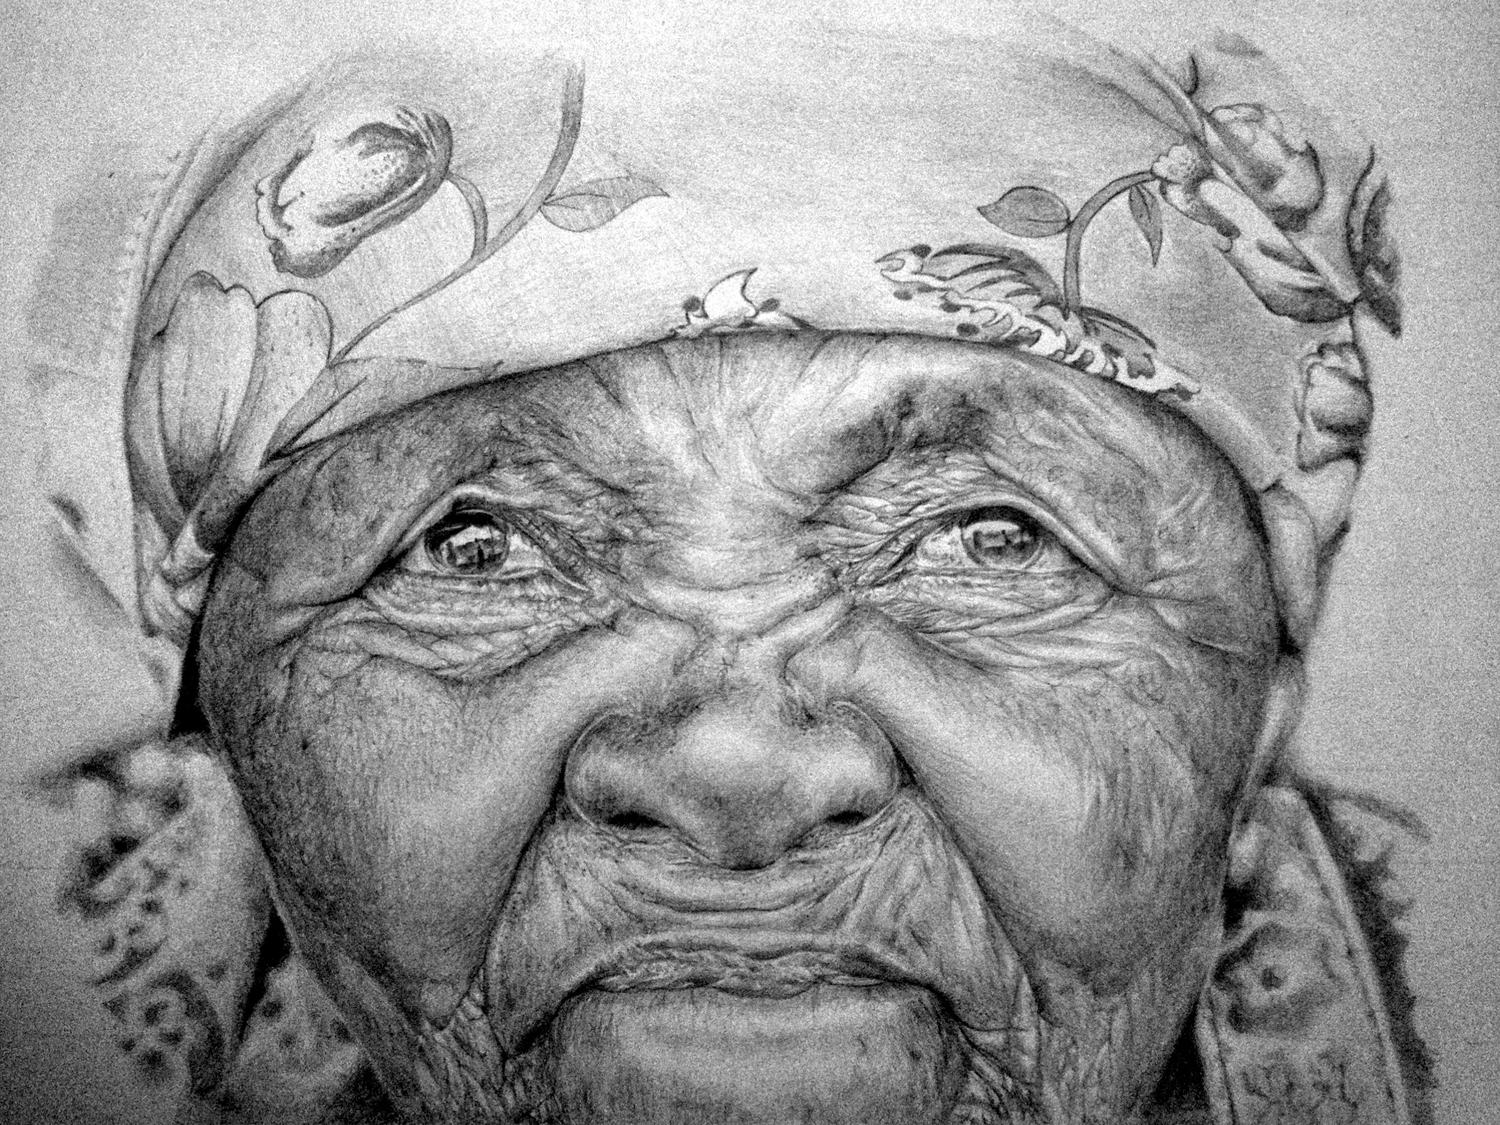 African Pencile Arts Pencil Sketch